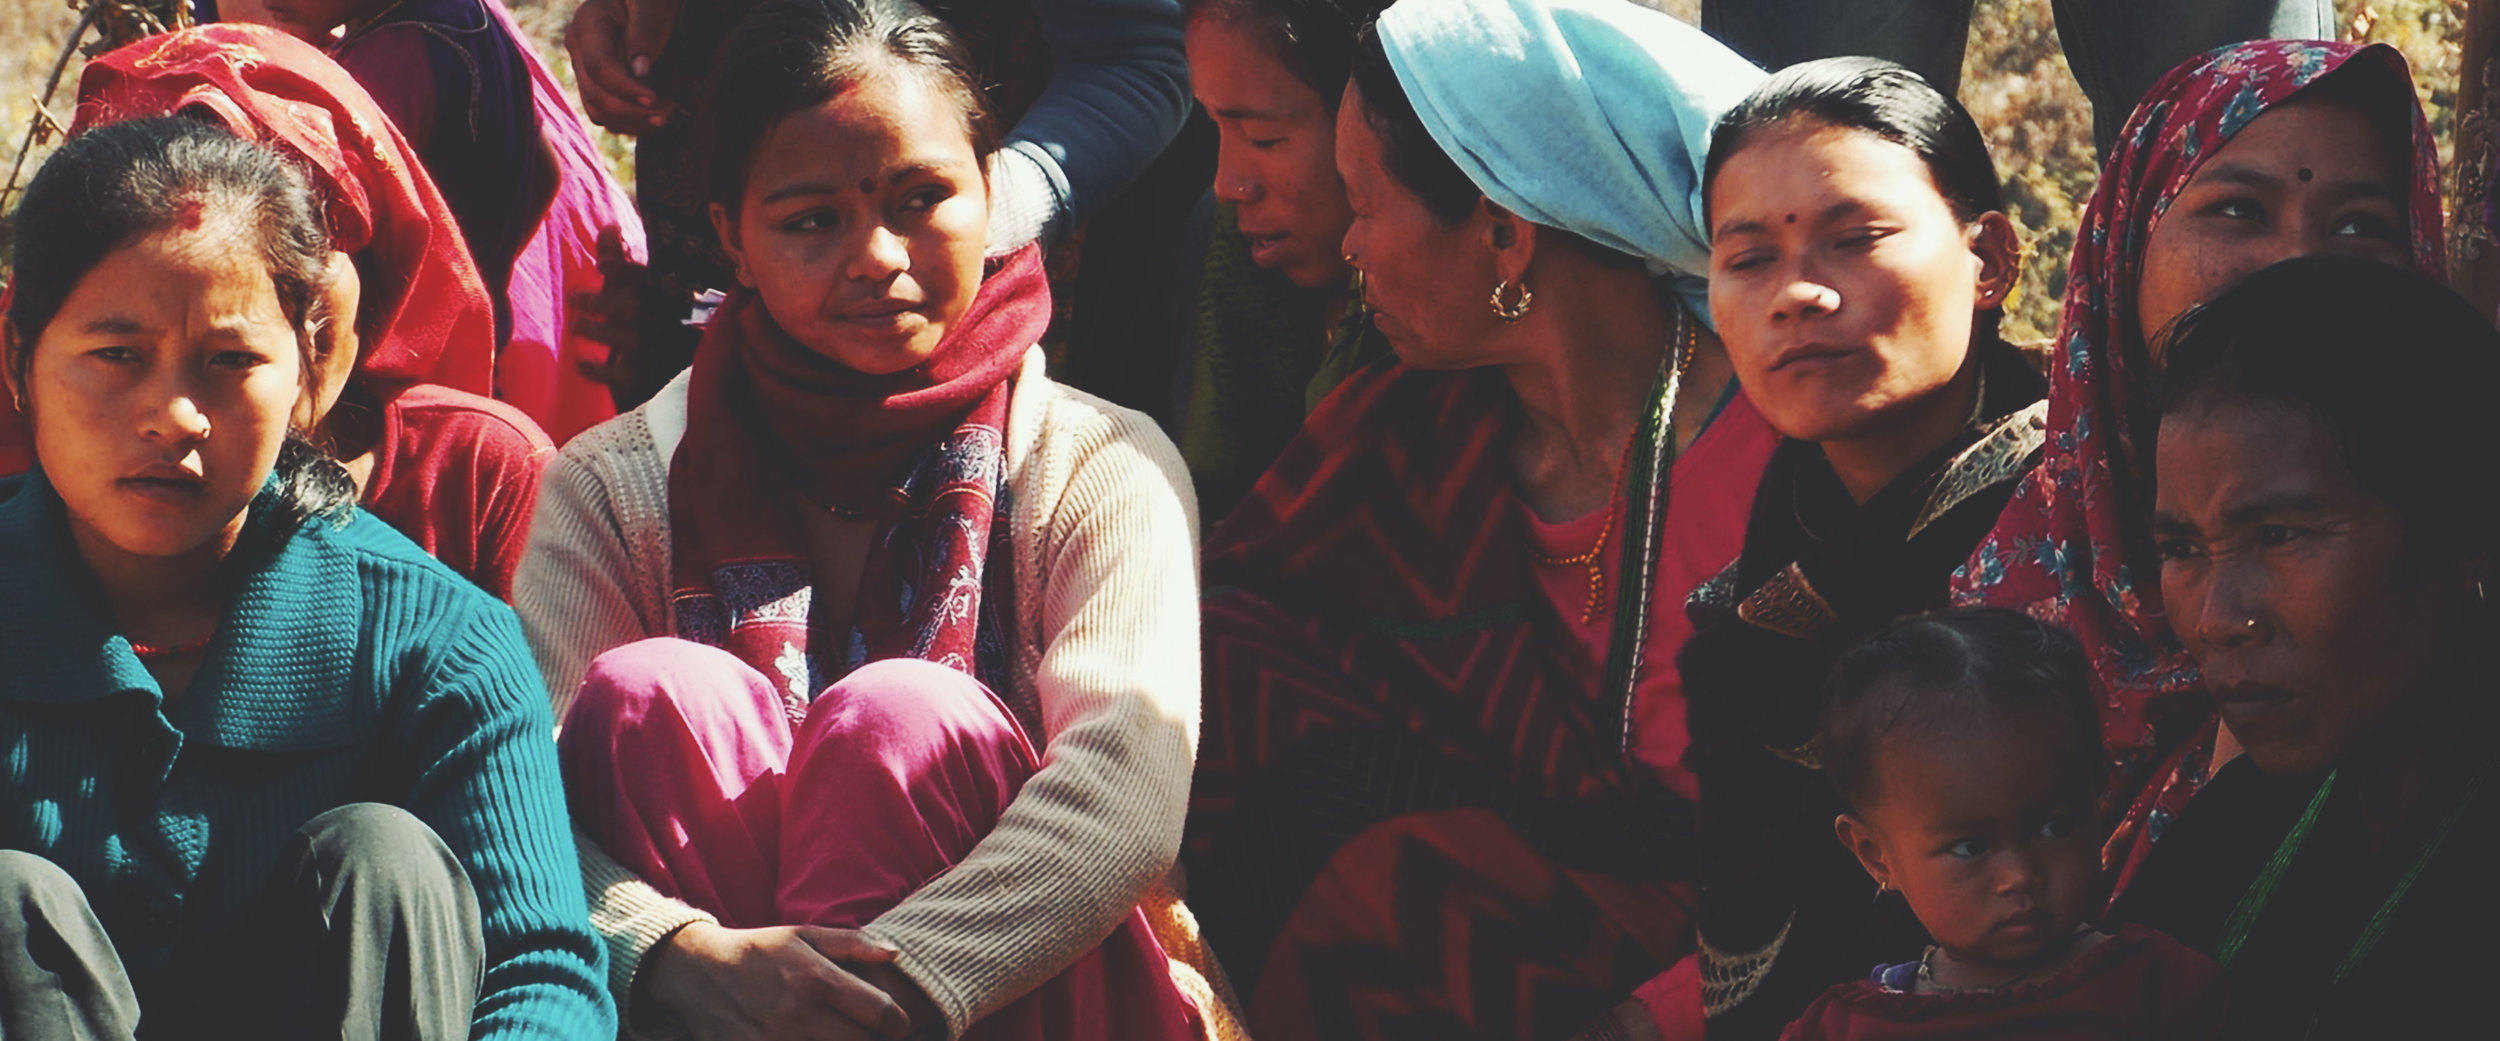 Nepal. Empowerment of women and girls is perhaps the single, most powerful strategy t0 drive achievement of the SDGs/Agenda 2030. But there is still much work ahead to develop and articulate the evidence informing effective and sustainable empowerment.   [Photo credit: David R Curry]